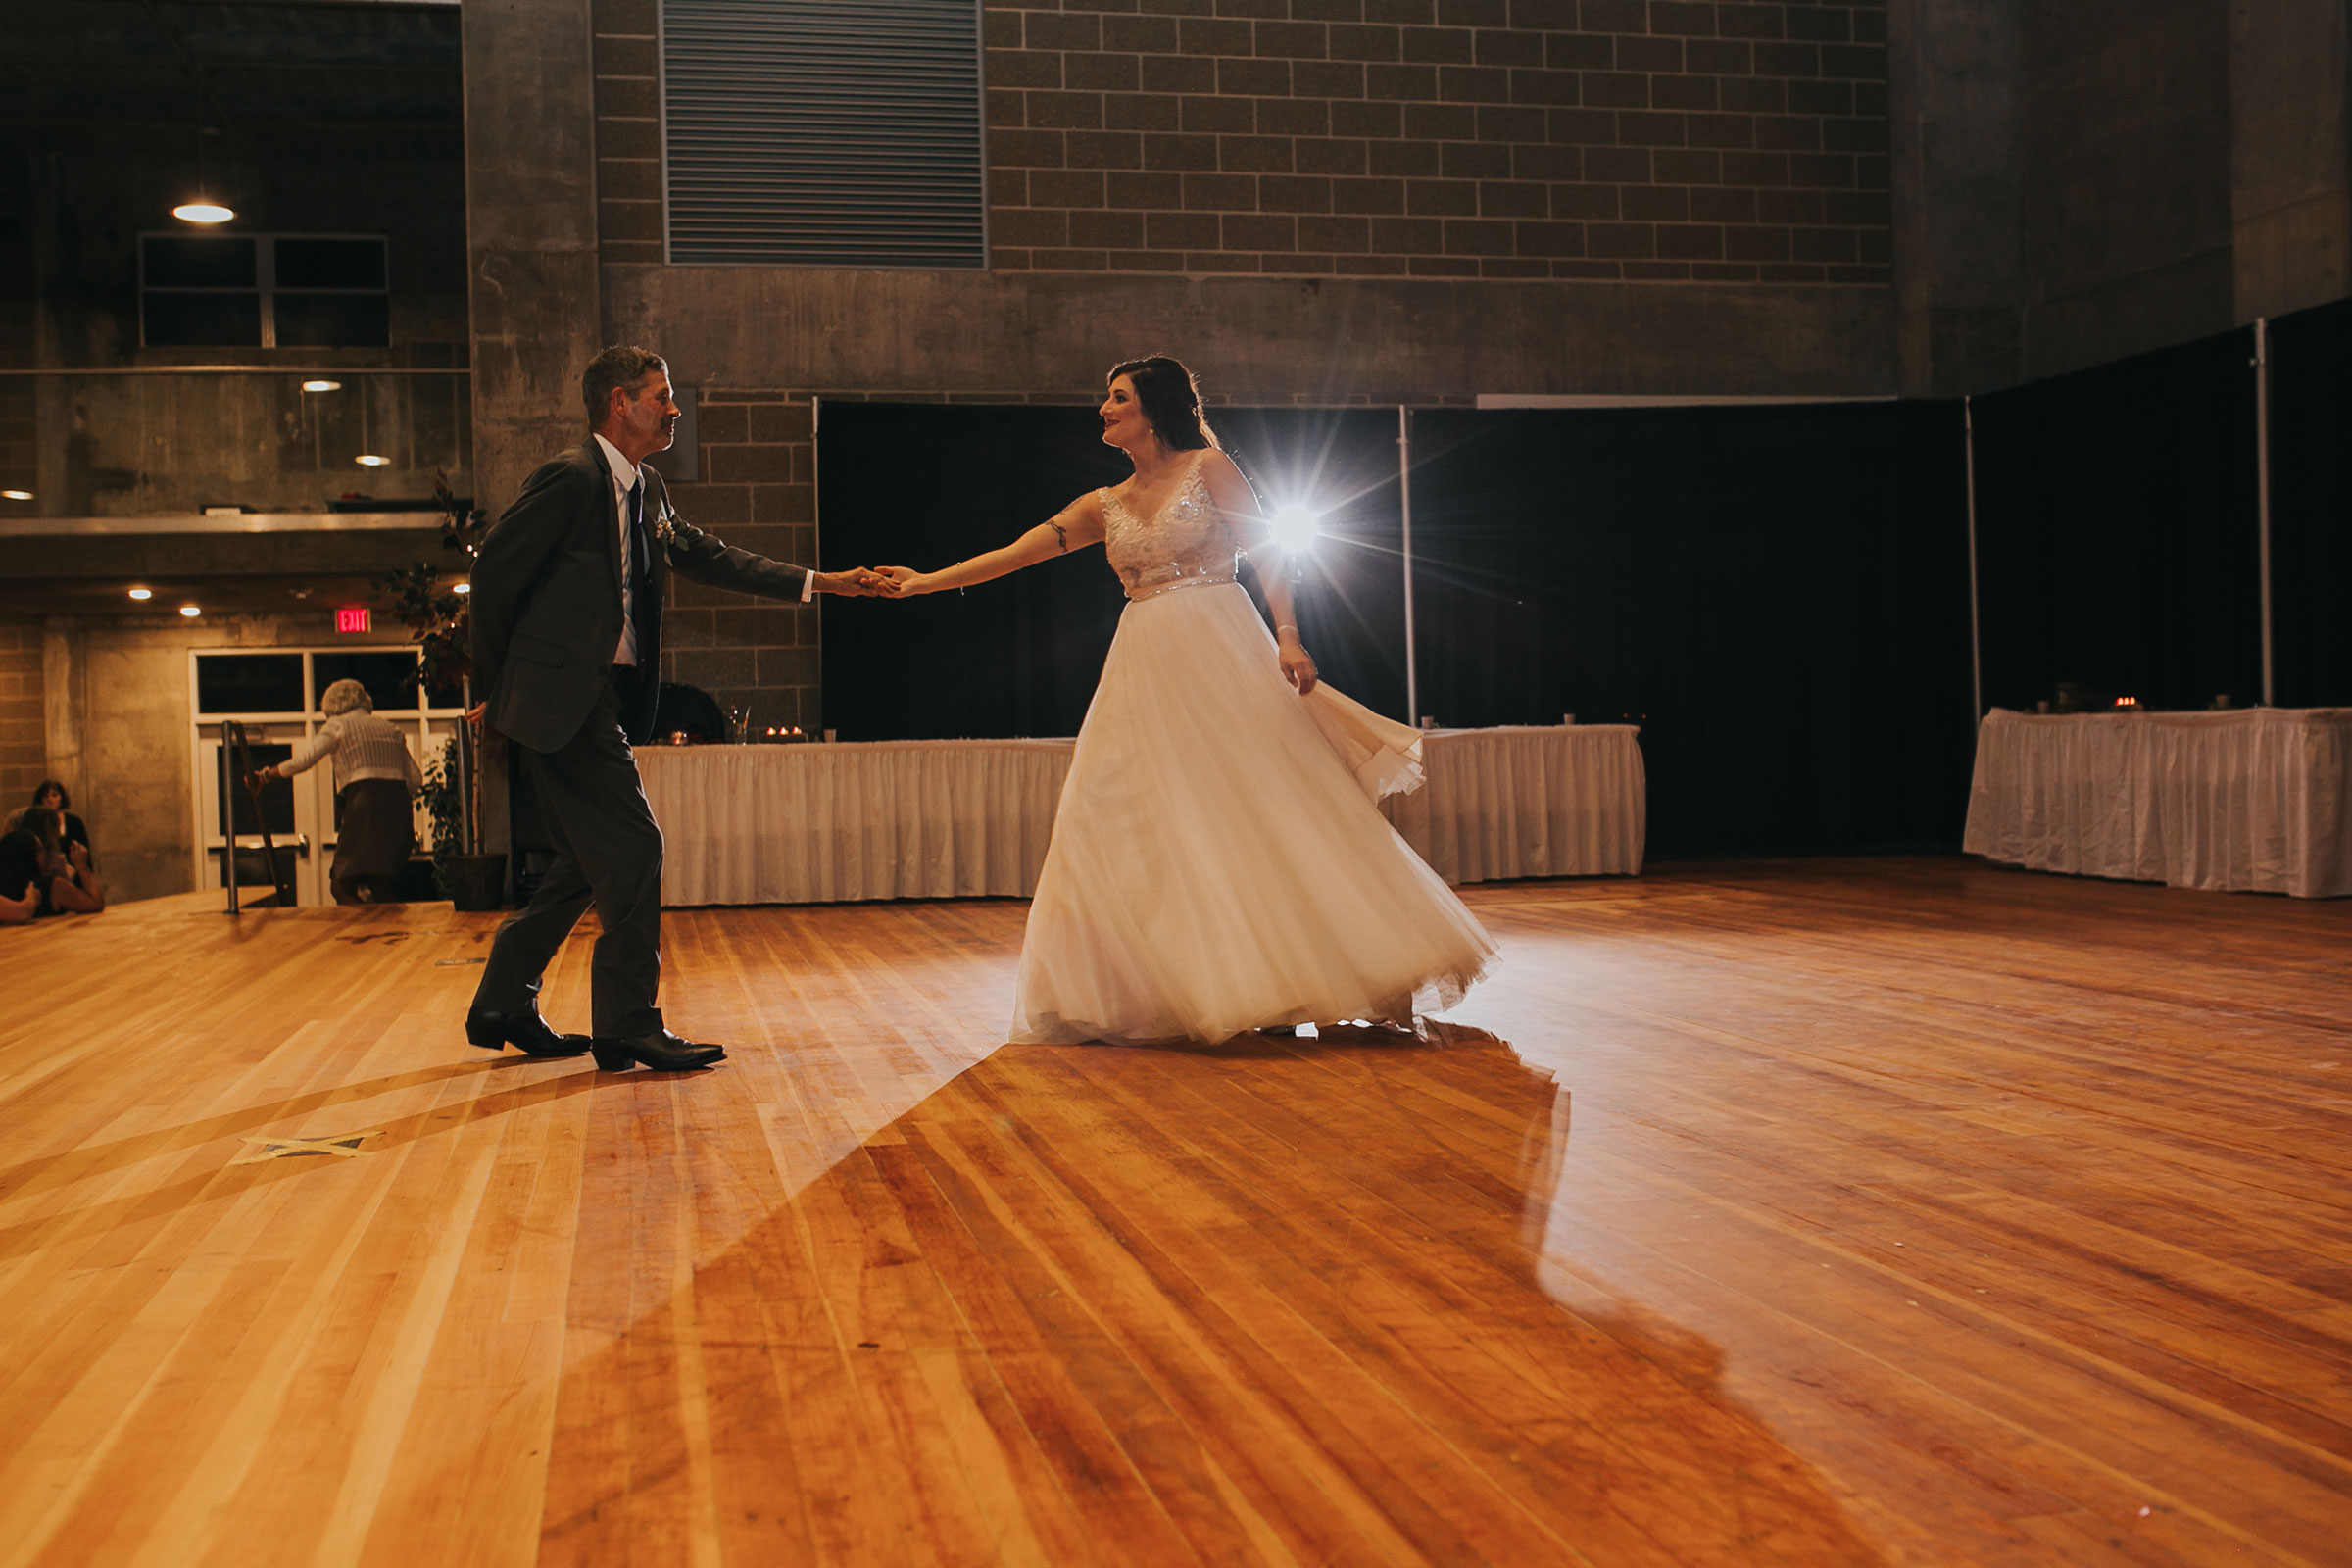 bride-first-dance-with-father-at-reception-pella-plaza-desmoines-iowa-raelyn-ramey-photography.jpg